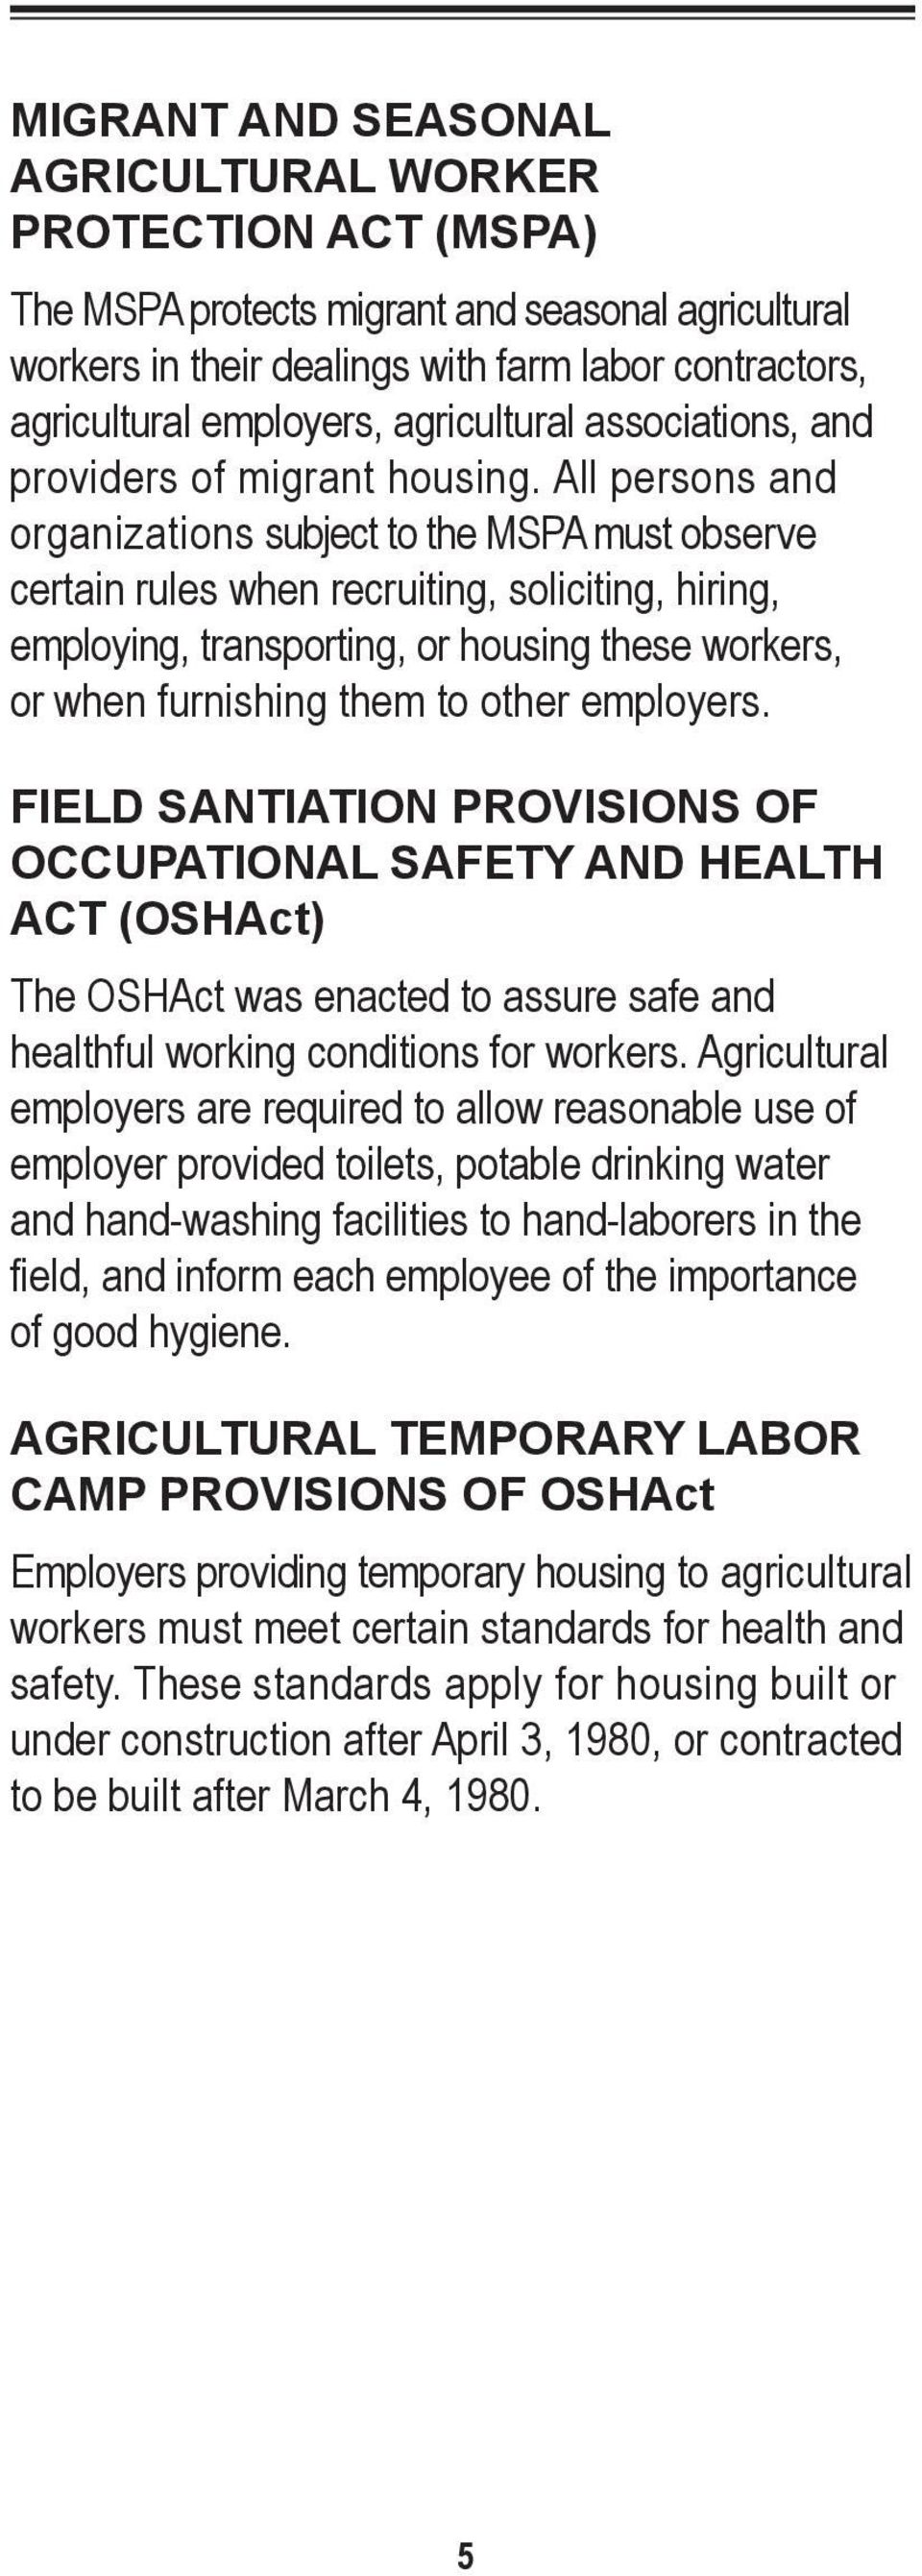 All persons and organizations subject to the MSPA must observe certain rules when recruiting, soliciting, hiring, employing, transporting, or housing these workers, or when furnishing them to other